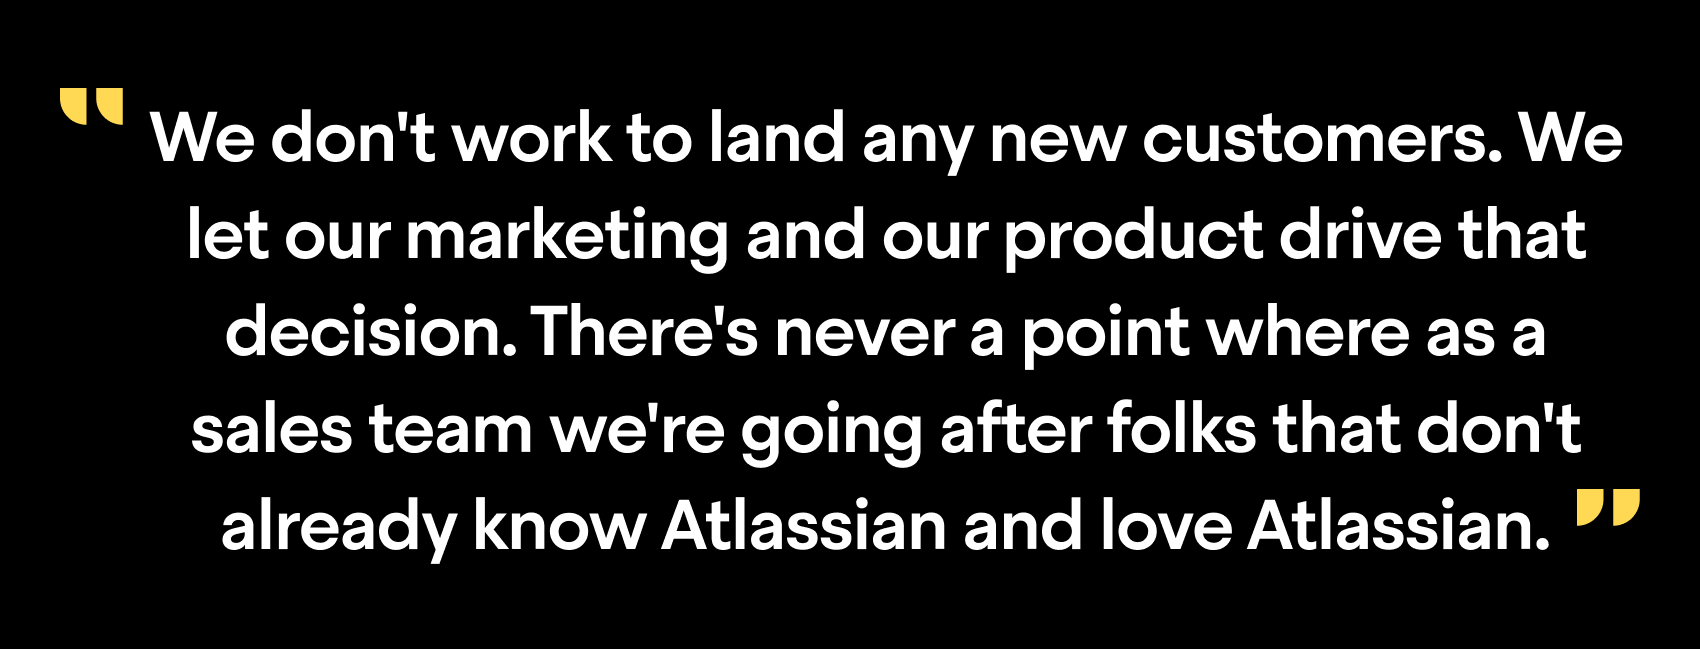 """We don't work to land any new customers. We let our marketing and our product drive that decision. There's never a point where as a sales team we're going after folks that don't already know Atlassian and love Atlassian"""